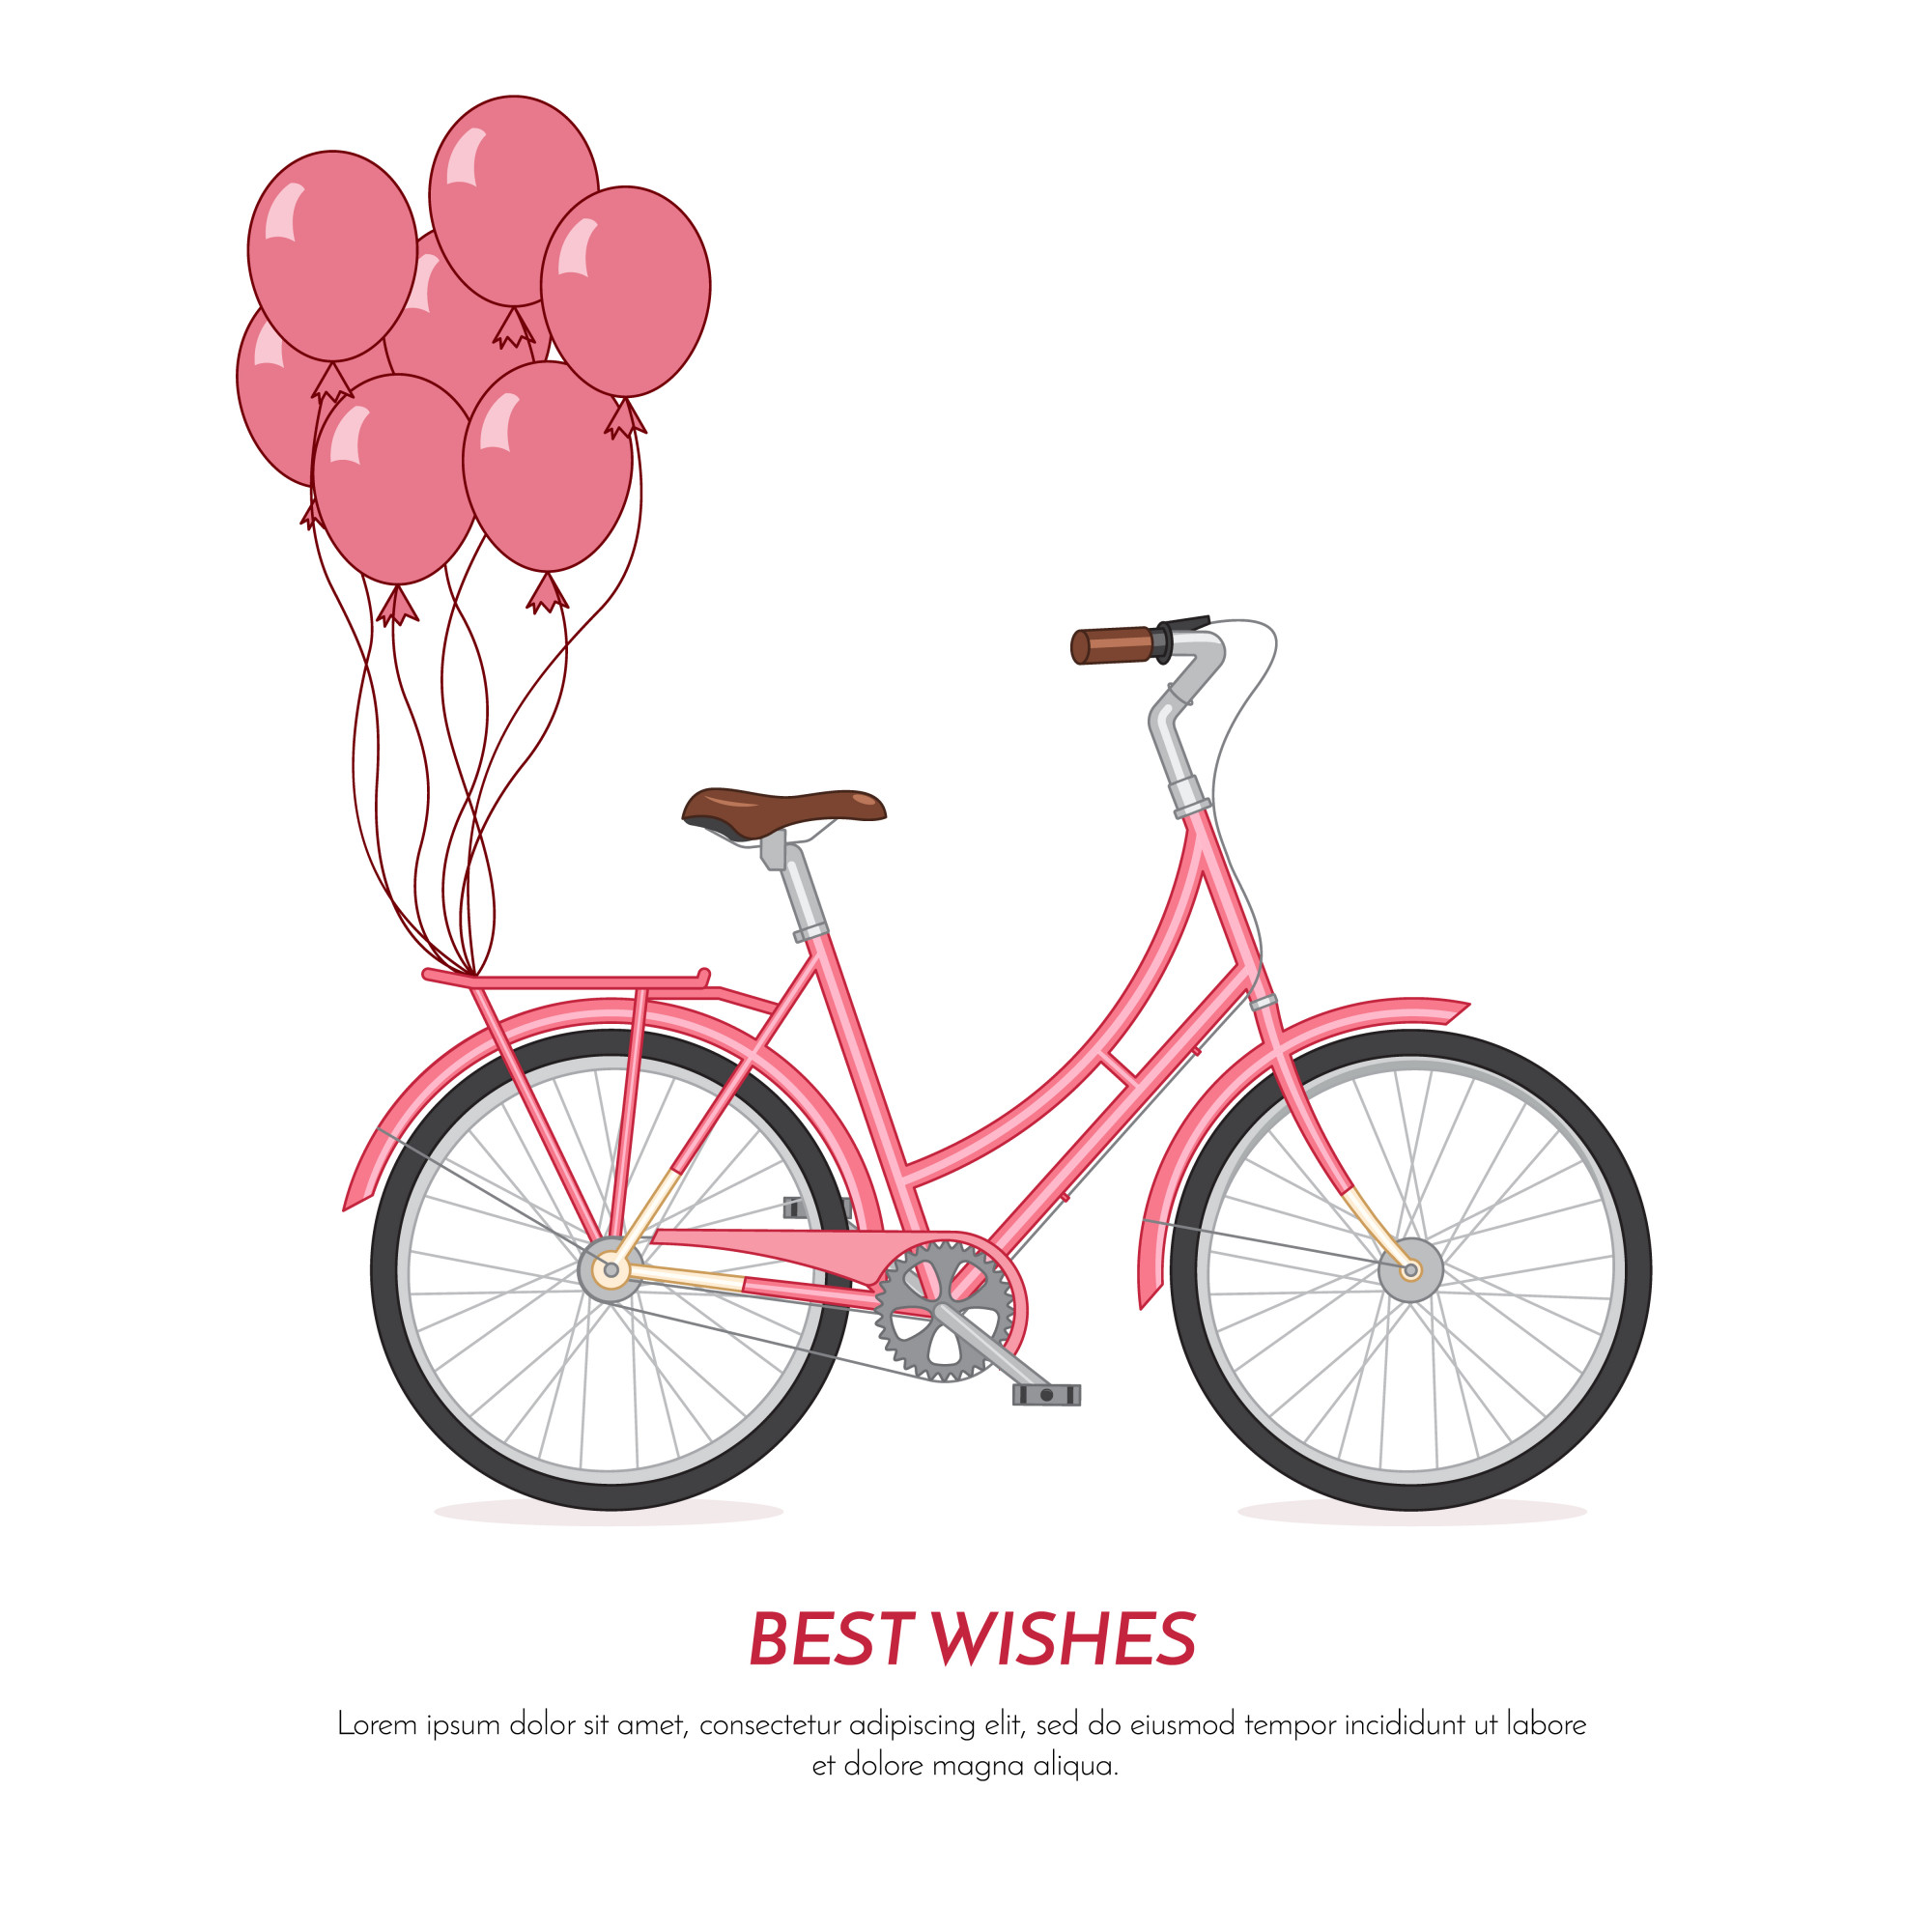 Pink retro bicycle withballoons attached to the trunk. Vintage color bike on white background